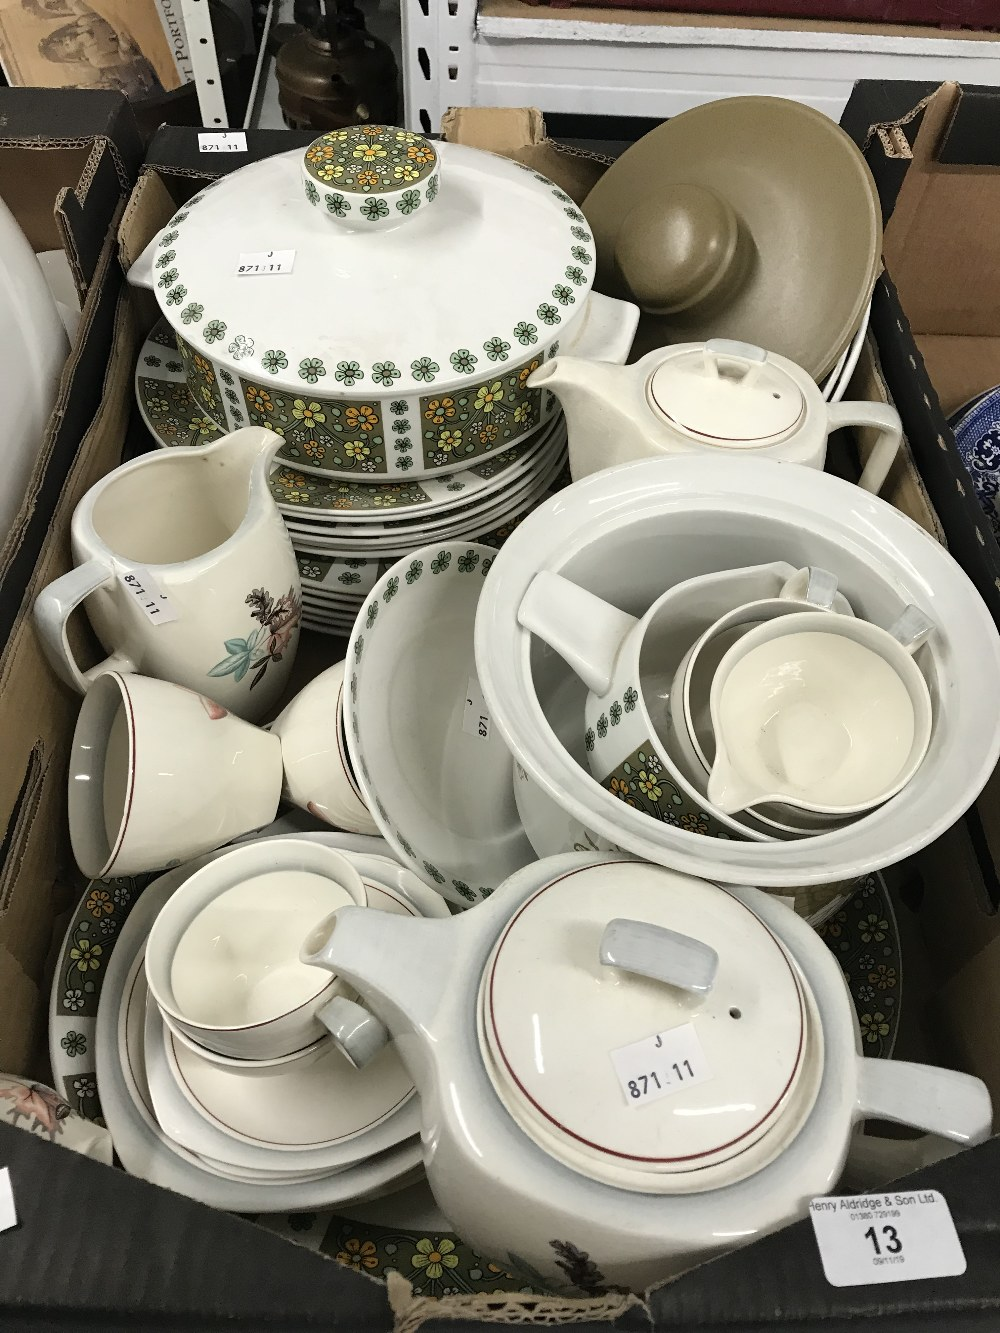 Lot 13 - 20th cent. Ceramics: Midwinter dinner ware, Stylecraft teapot/coffee pot, assorted cups and saucers,